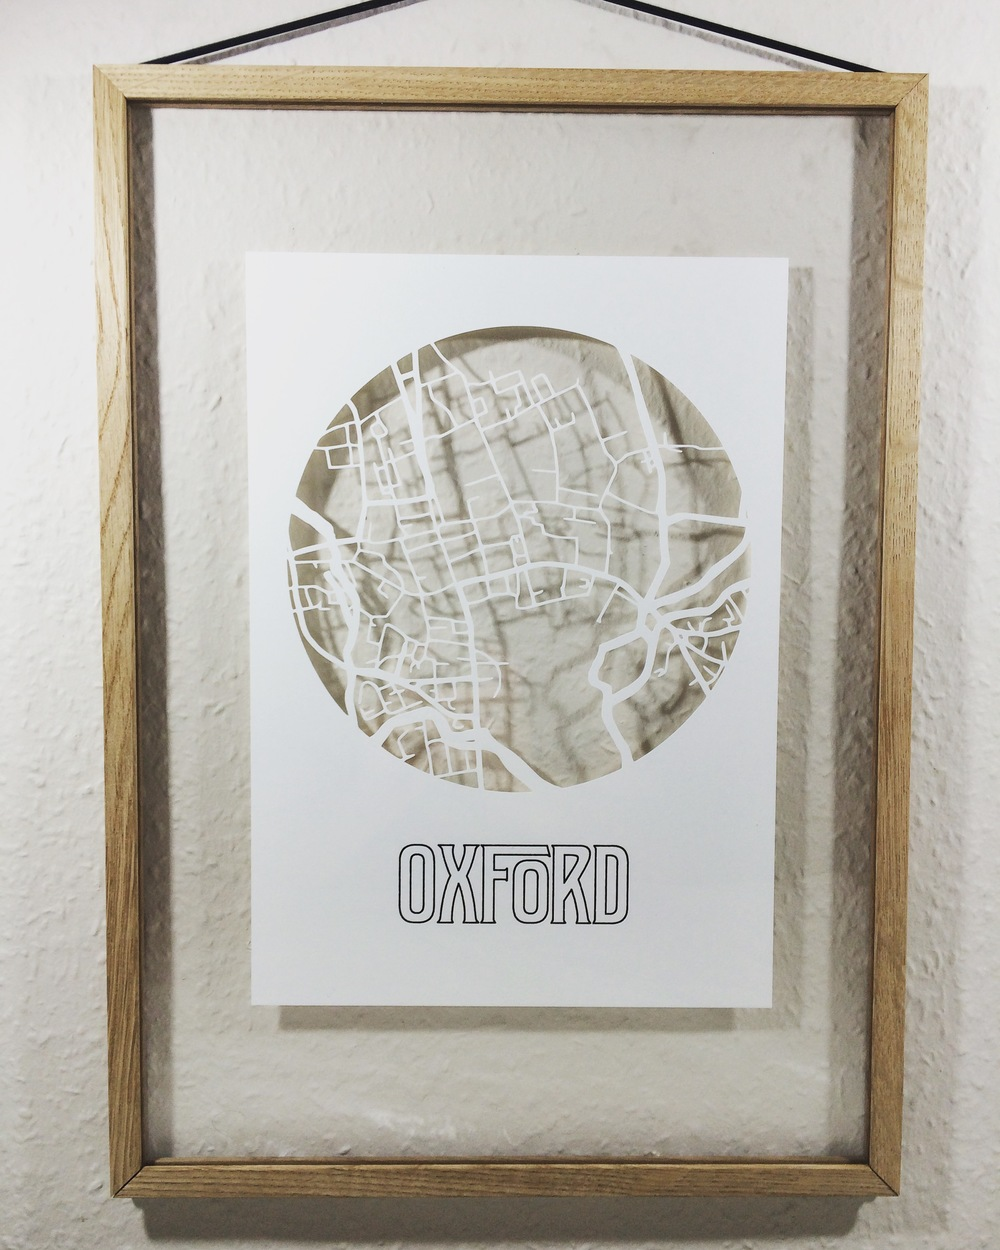 Kartegraphik Paper Cut Oxford Framing.JPG